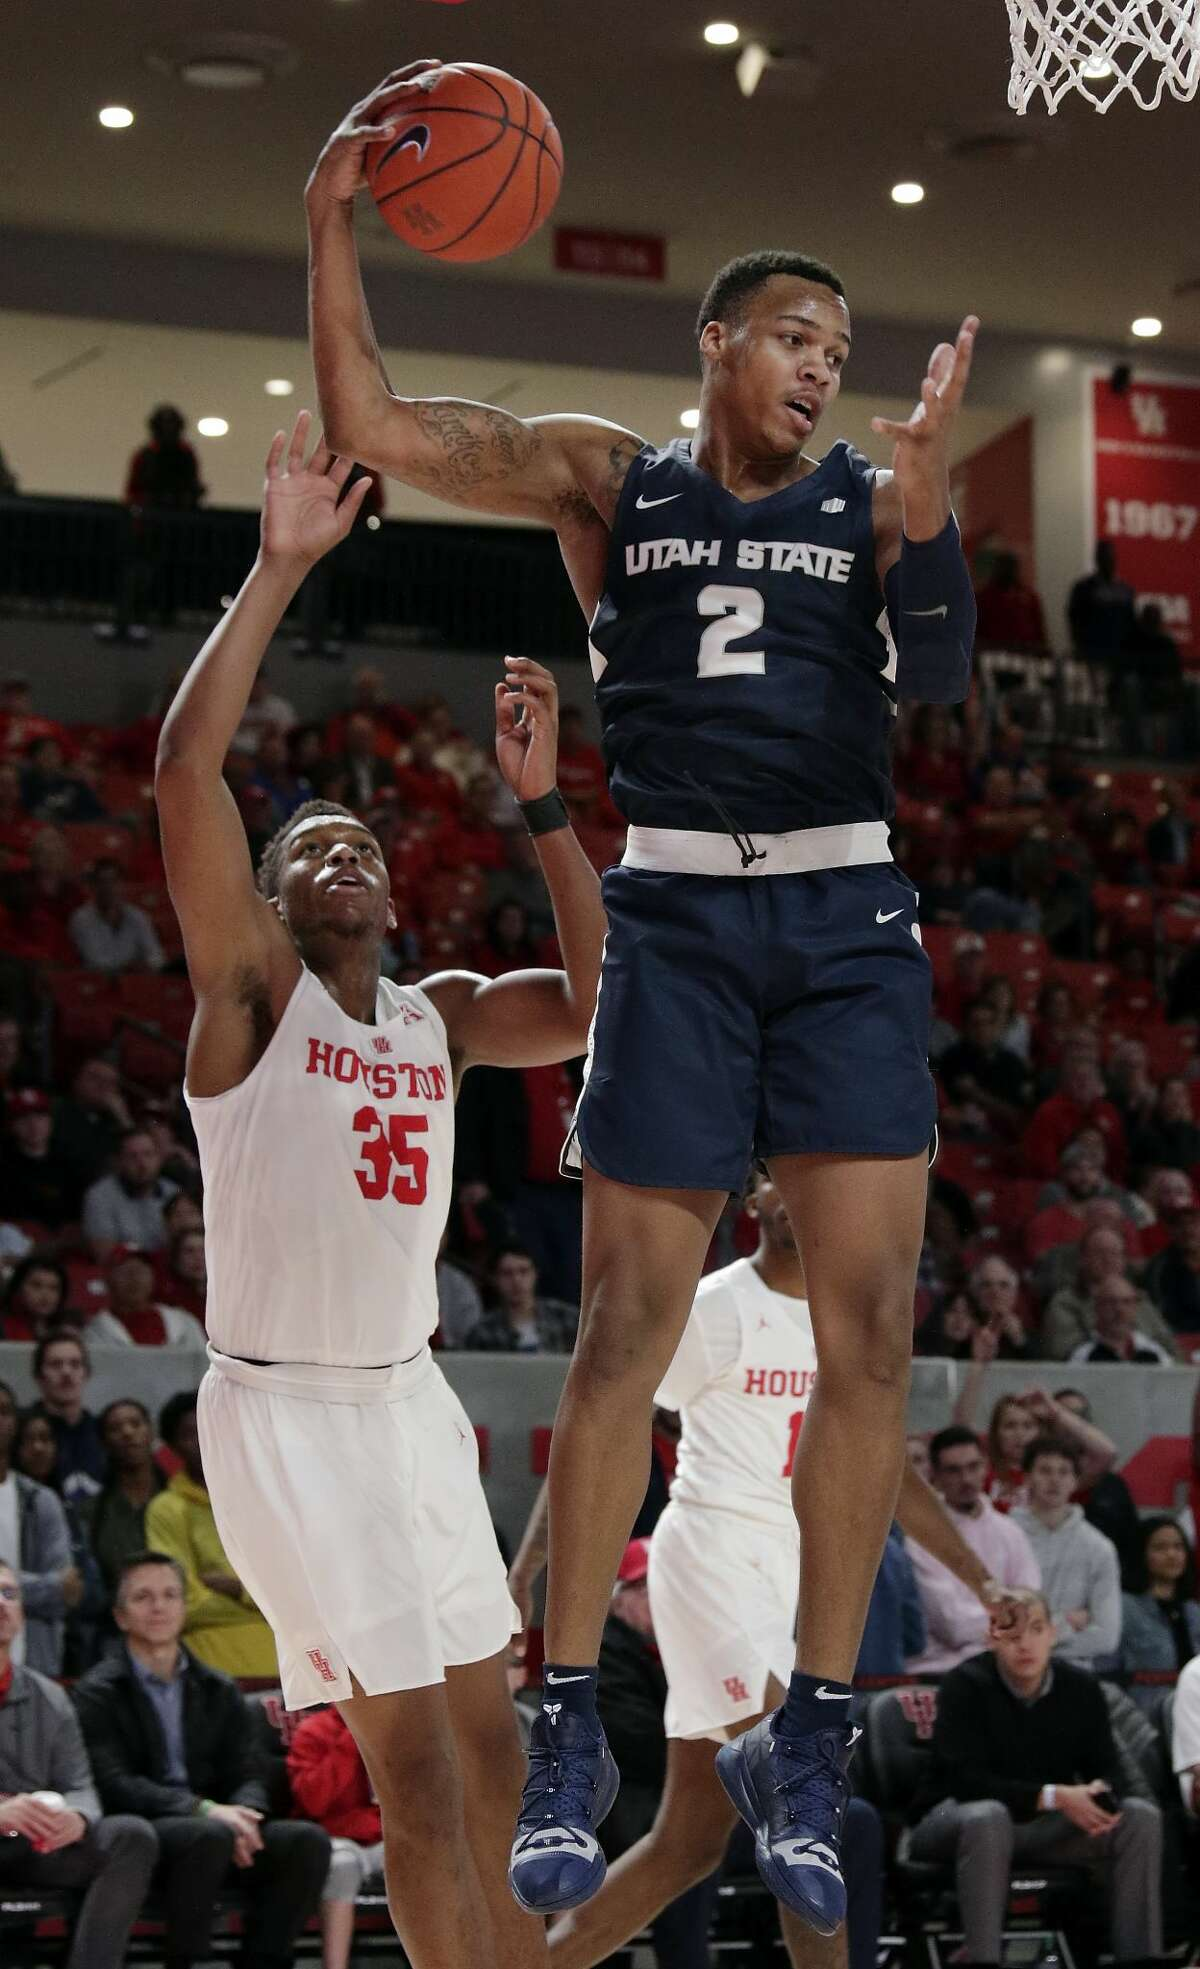 2018-19 REGULAR-SEASON RECAP The Aggies shared the Mountain West regular-season title with Nevada. They split their two games with the Wolfpack, who are a seven seed in the West region. Other notable results from USU's season: Lost by 10 to Houston (No. 3 seed in tournament) on Dec. 20, Beat St. Mary's (No. 11 seed) on Nov. 19, Lost to Arizona State (Play-in No. 11 seed) by five on Nov. 20.